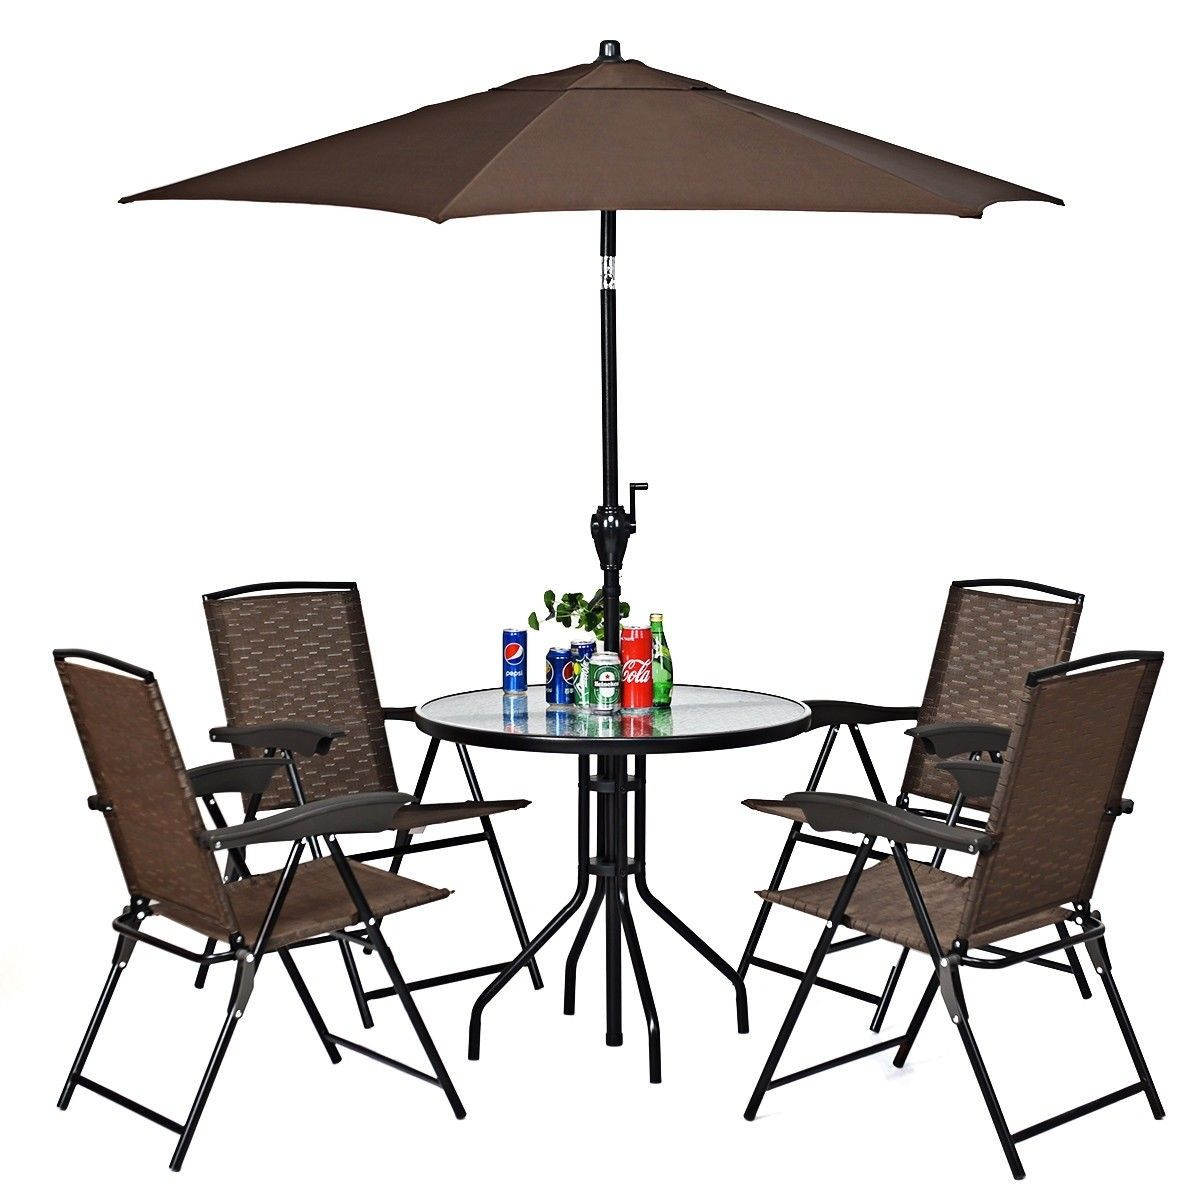 4 Pcs Folding Sling Chairs With Steel Armrest And 640 x 480